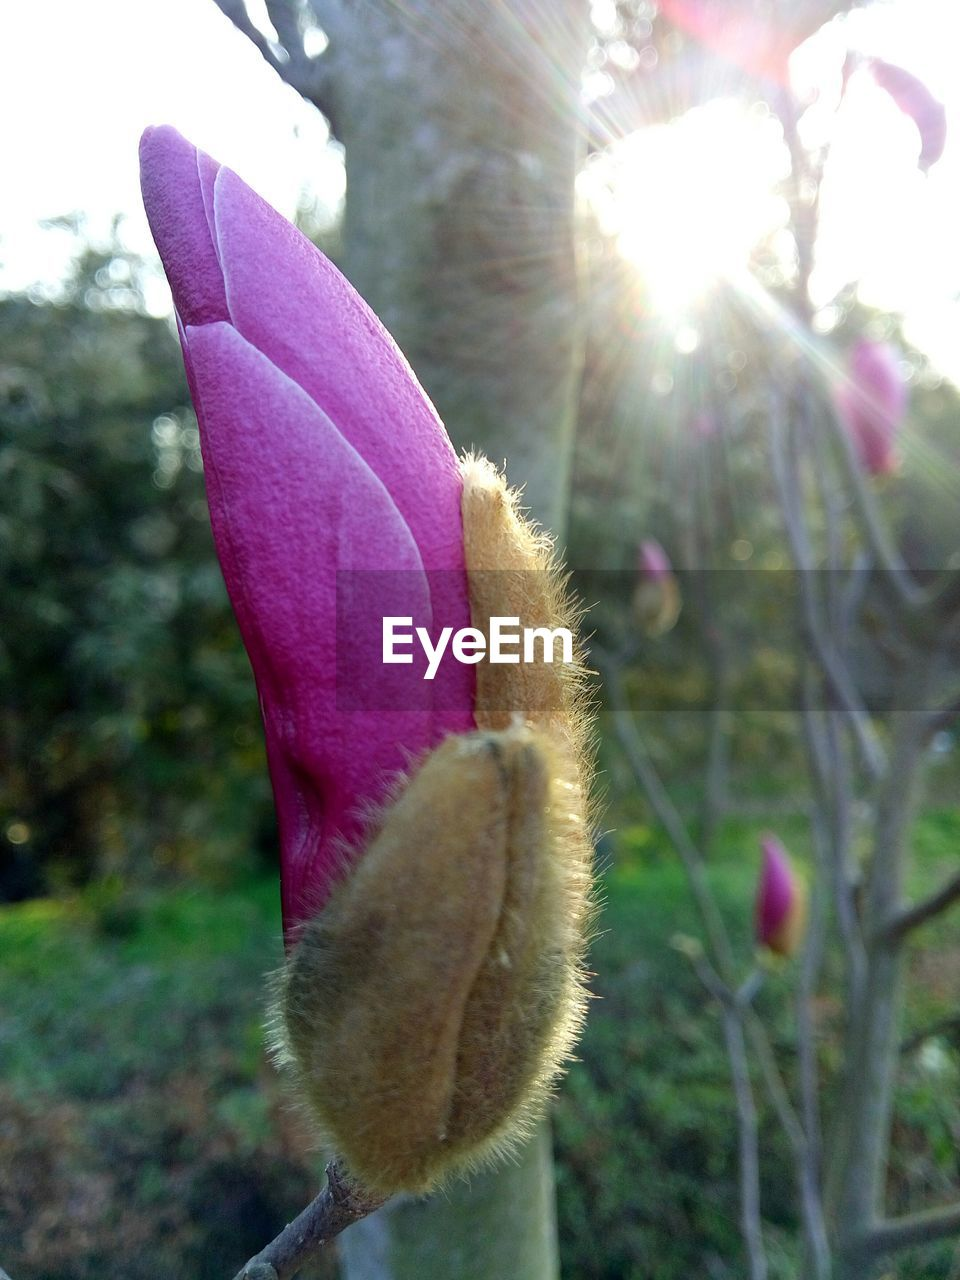 Close-Up Of Pink Flower Bud Outdoors